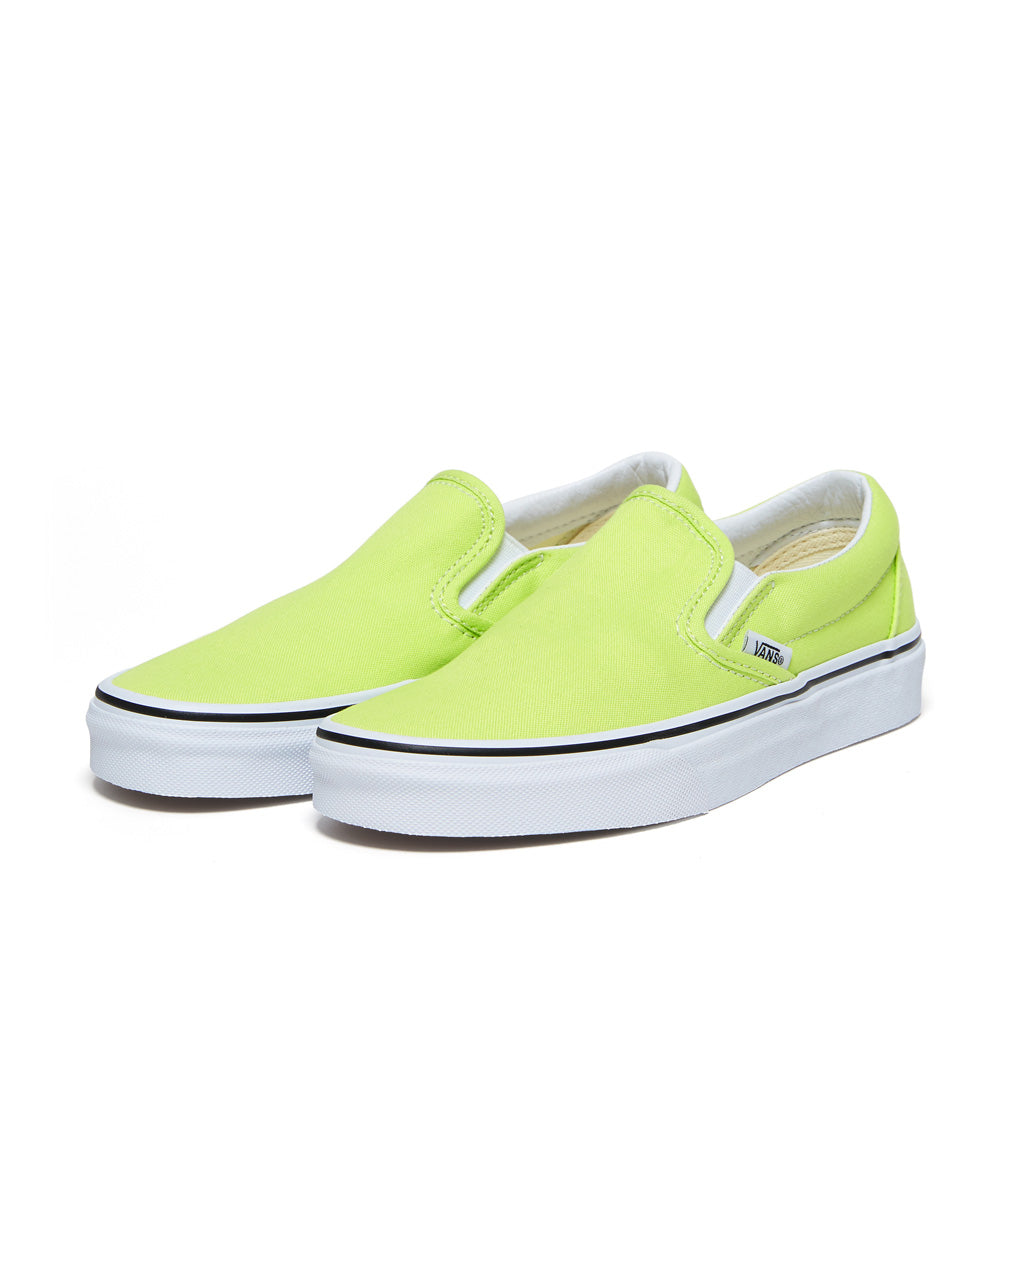 These Vans Classic Slip-On shoes come in sharp green with white outsoles.